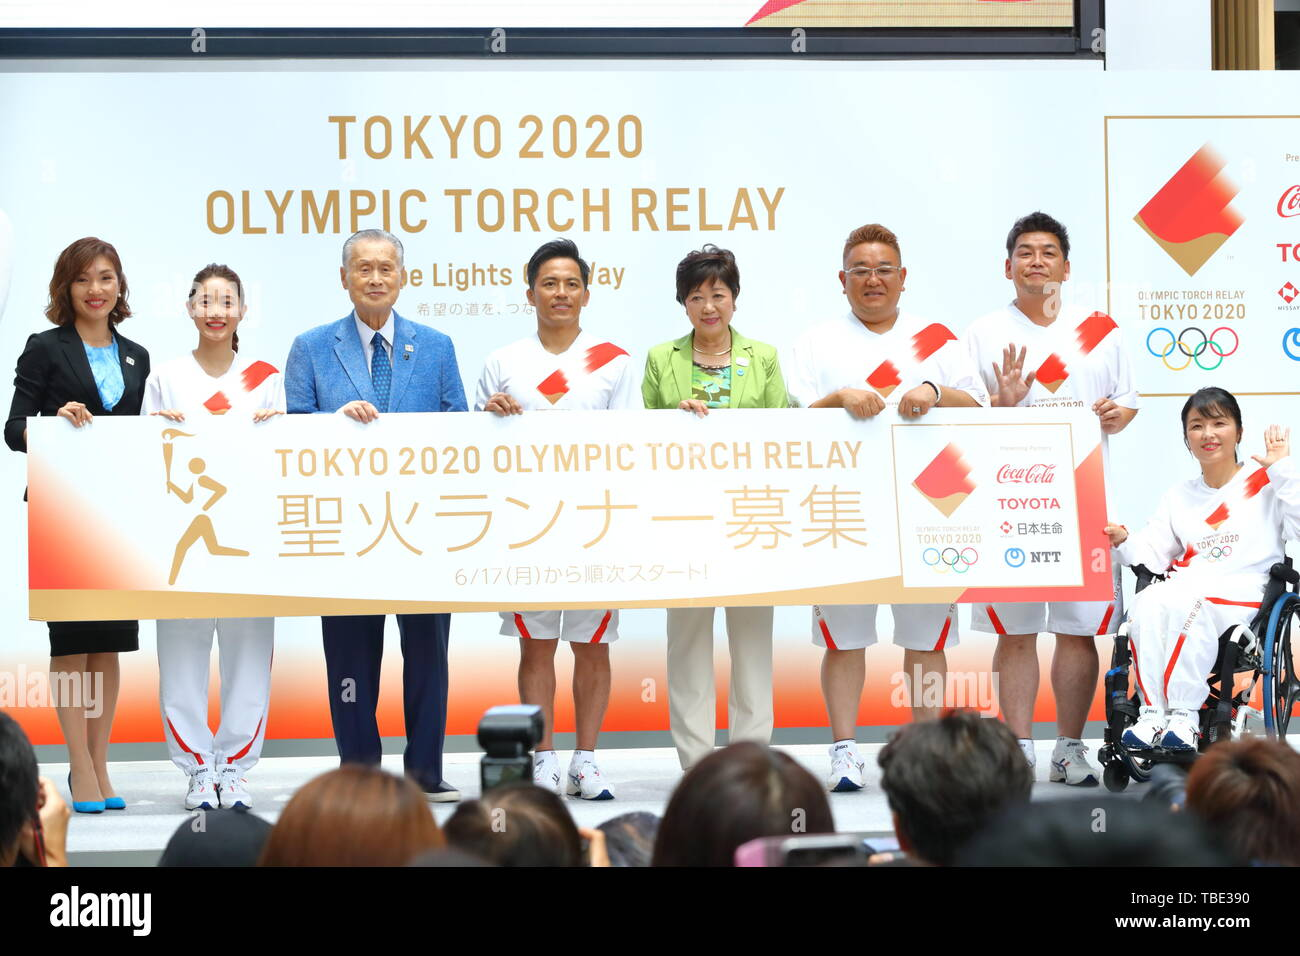 Tokyo, Japan. 1st June, 2019. (L-R) Miho Takeda, Satomi Ishihara, Yoshiro Mori, Tadahiro Nomura, Yuriko Koike, Mikio Date, Takeshi Tomizawa, Aki Taguchi, The Tokyo Organising Committee of the Olympic and Paralympic Games (Tokyo 2020) holds commemorative event of Torch Relay in Tokyo, Japan on June 1, 2019, 300 days before of the Japanese leg of the Tokyo 2020 Olympic Torch Relay starts. The Organising Committee unveiled an official uniform, course outline and applicant guidelines for Torch Relay Runners. Credit: Naoki Nishimura/AFLO SPORT/Alamy Live News - Stock Image